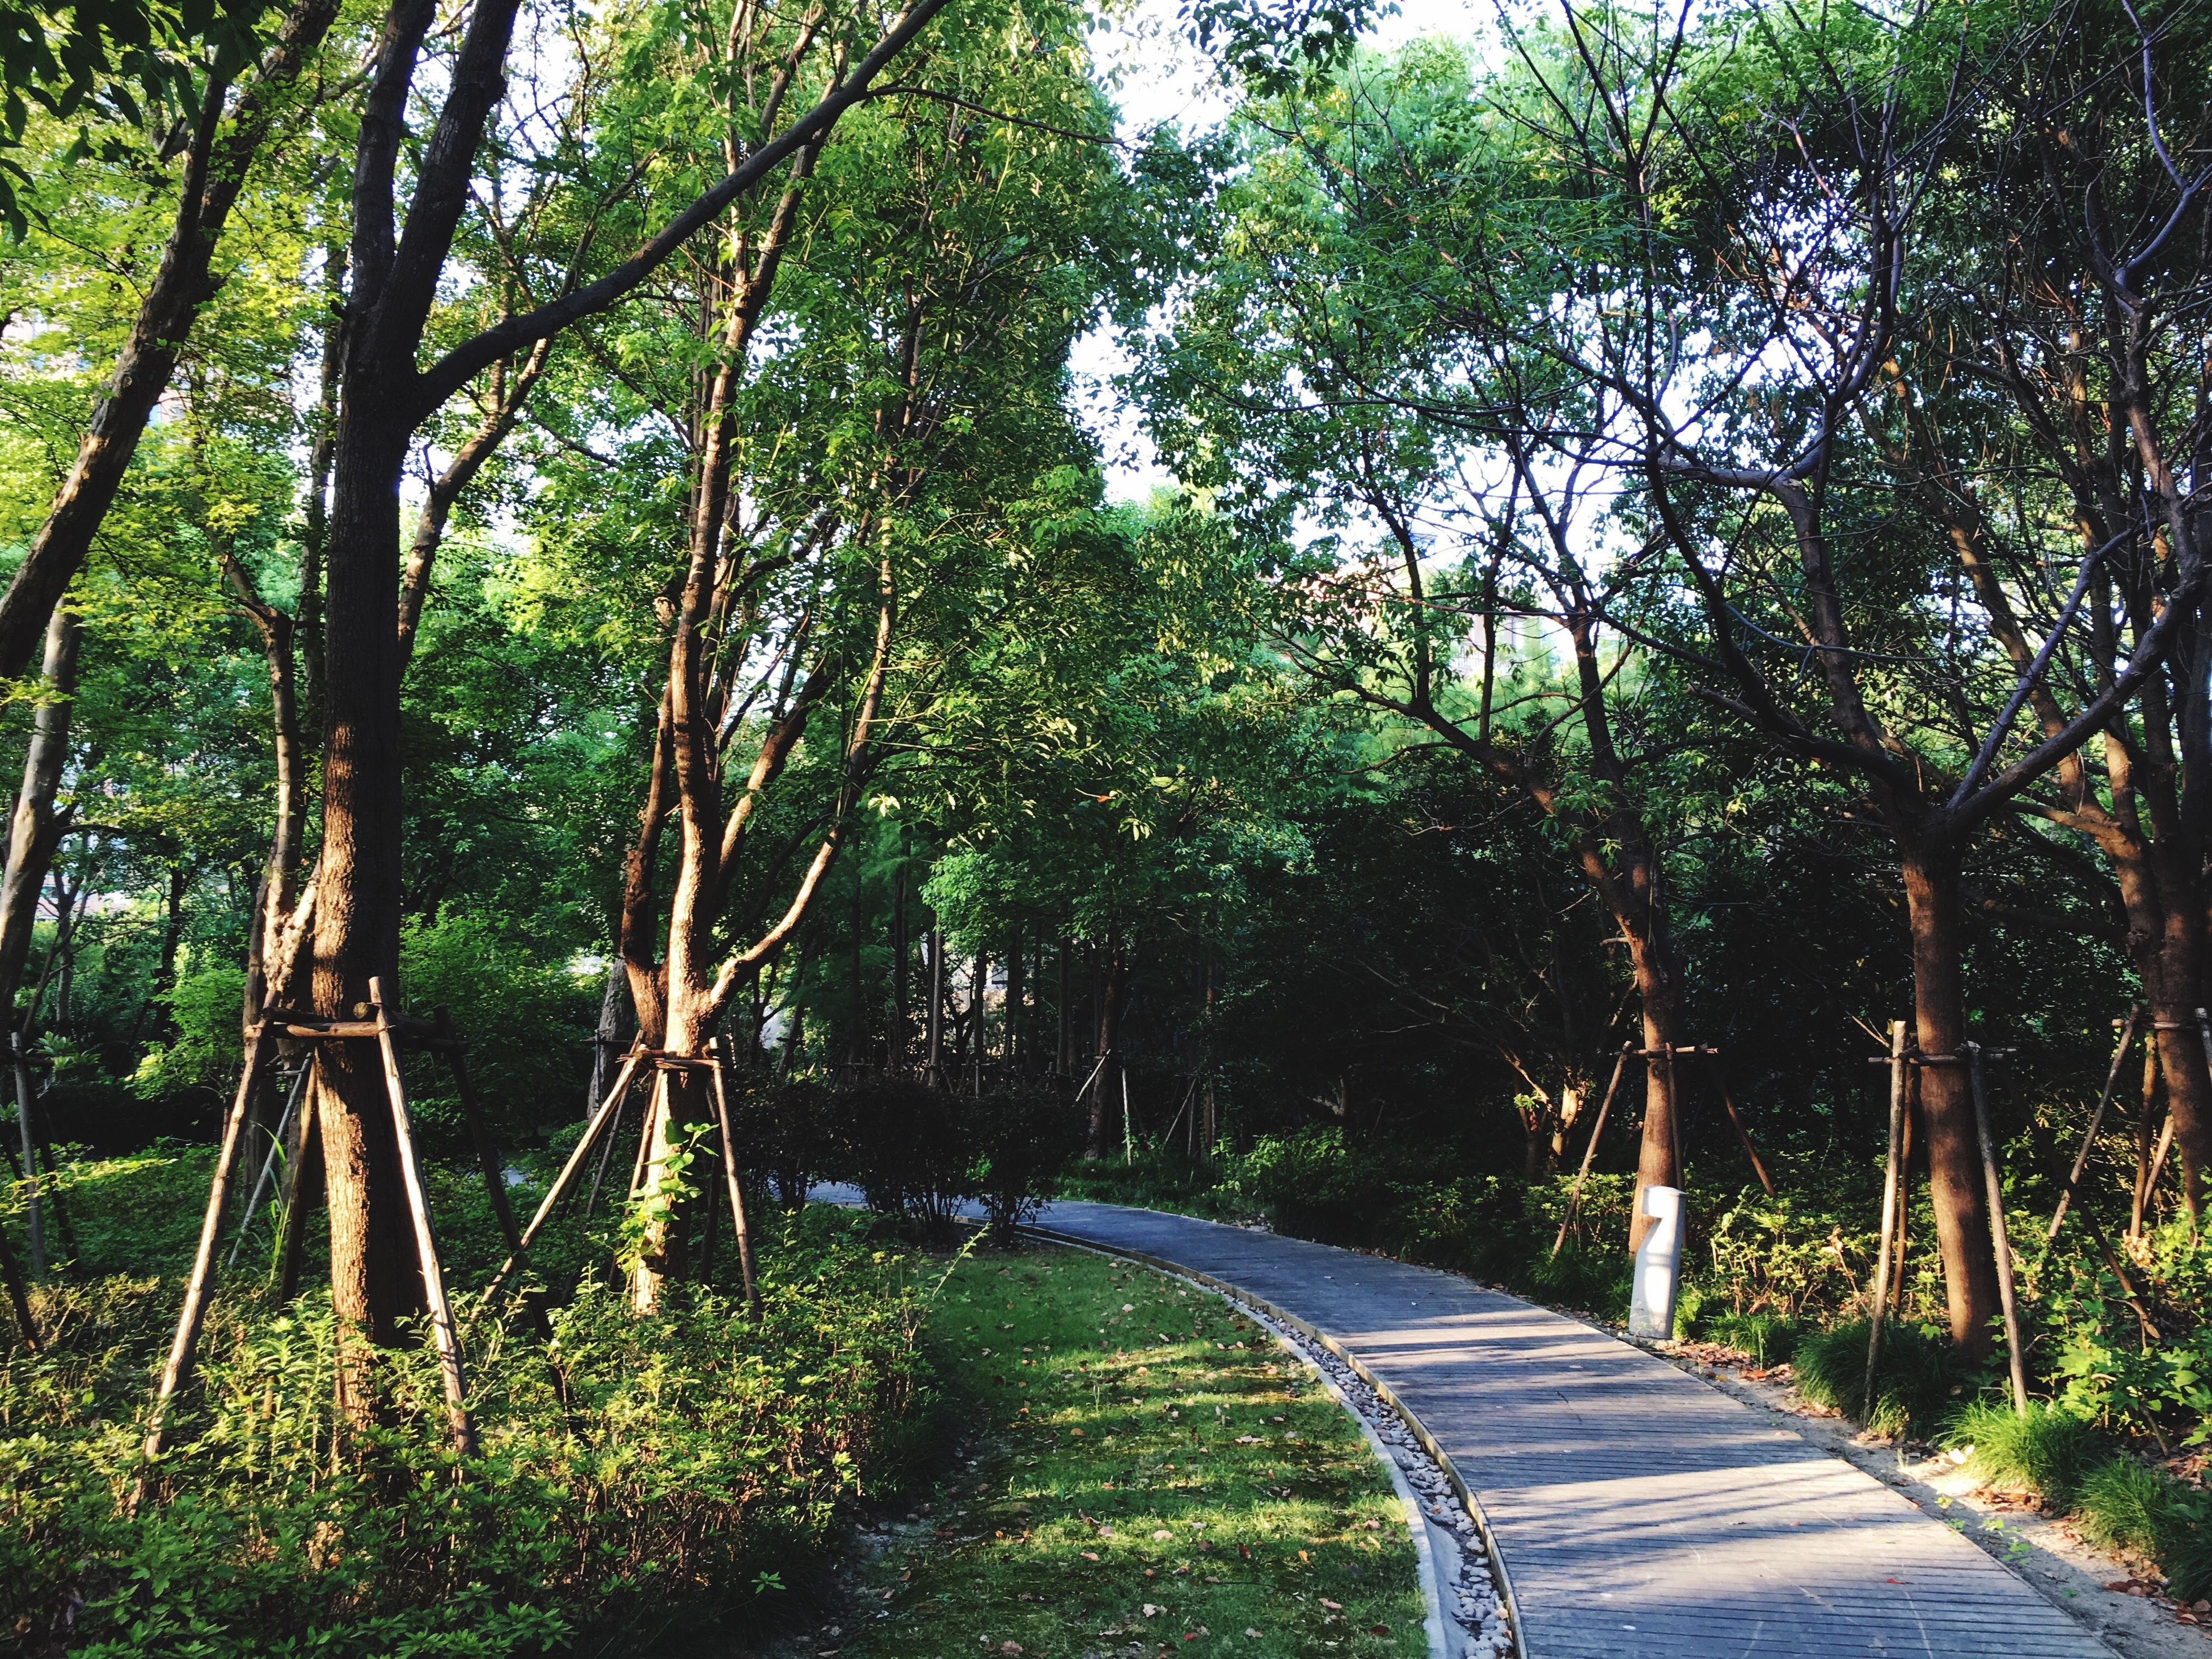 tree, the way forward, tranquil scene, forest, tranquility, tree trunk, long, growth, scenics, empty, nature, diminishing perspective, beauty in nature, woodland, non-urban scene, narrow, green color, lush foliage, solitude, empty road, day, green, outdoors, curve, tall - high, vanishing point, treelined, tourism, greenery, remote